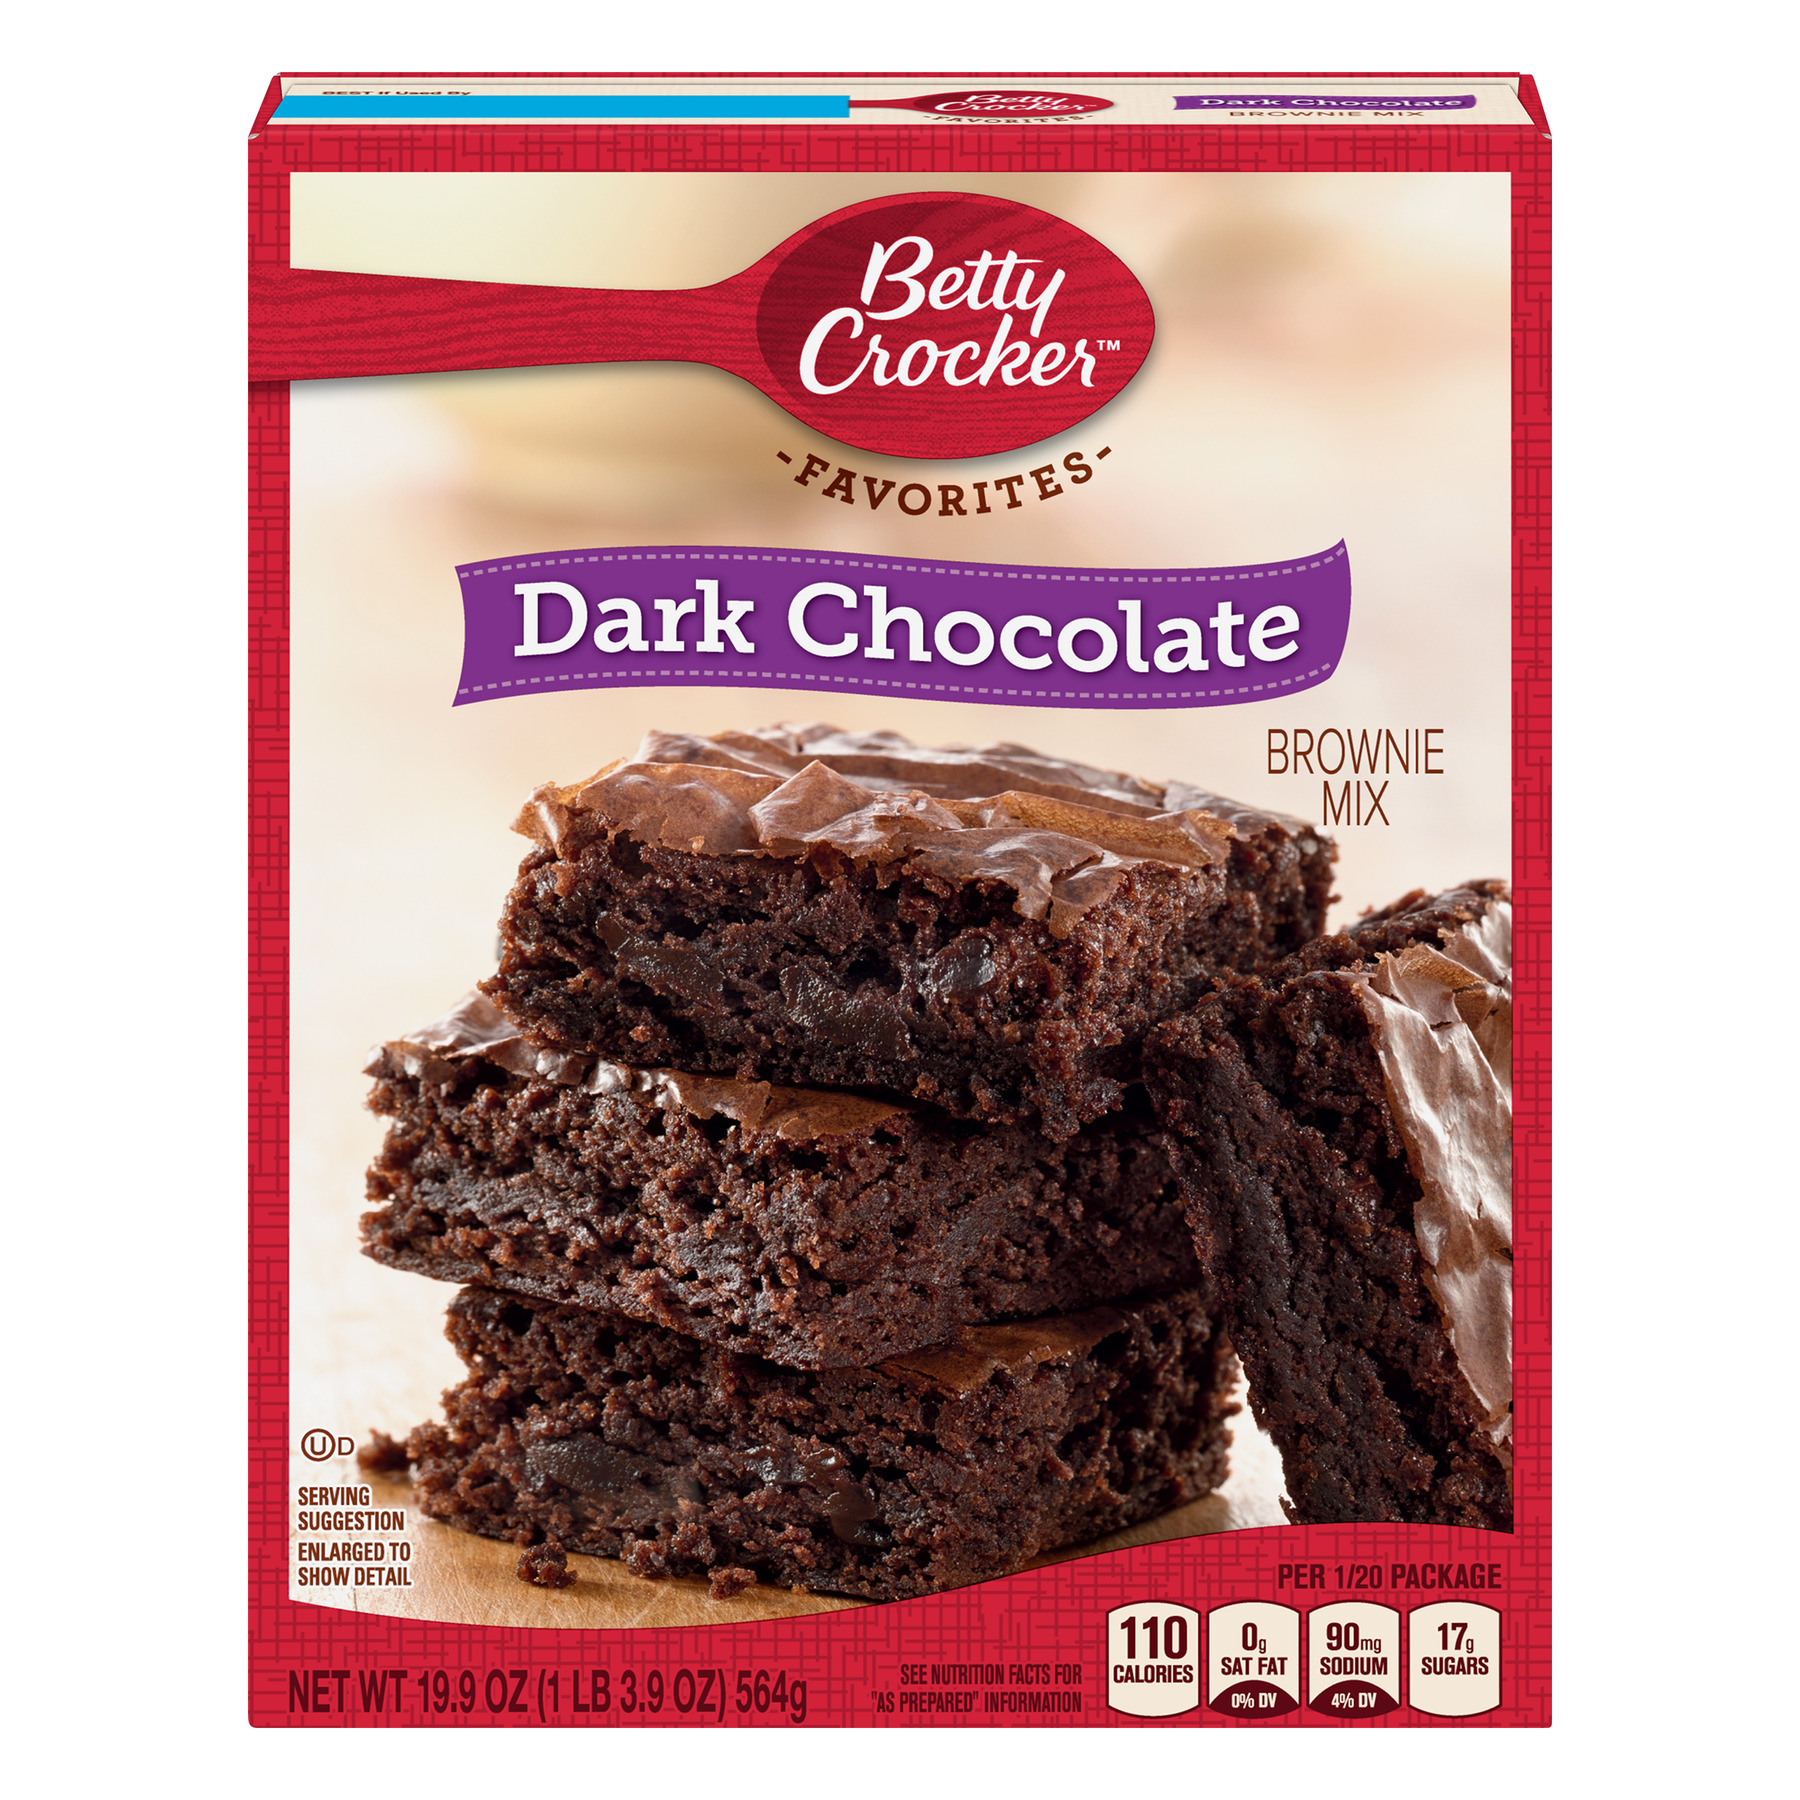 (5 Pack) Betty Crocker Dark Chocolate Brownie Mix Family Size, 19.9 oz